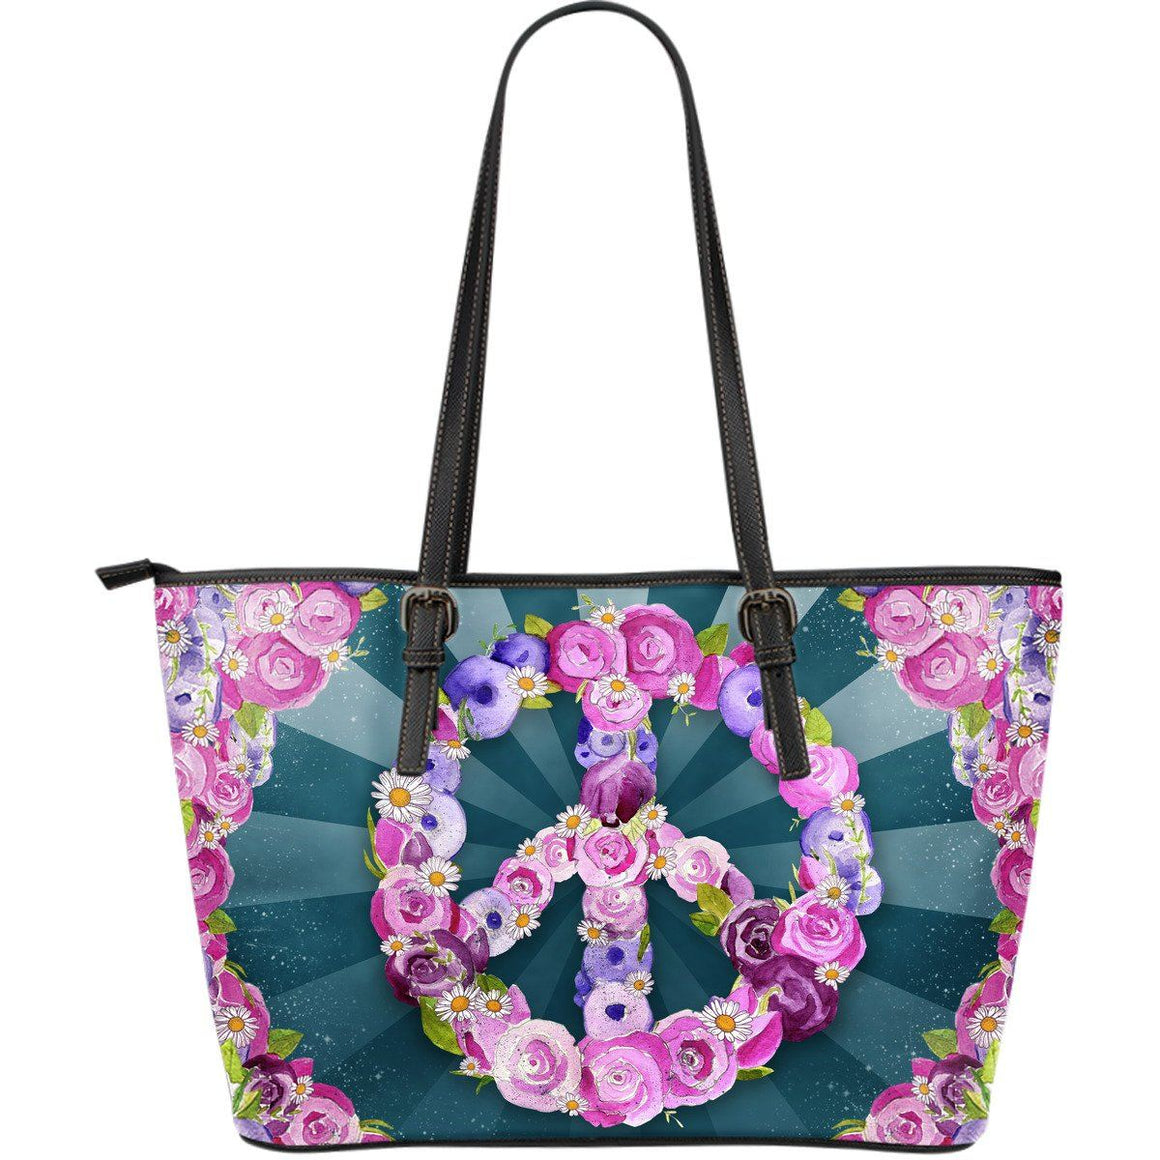 Peace n' Love - Big artificial leather bag.